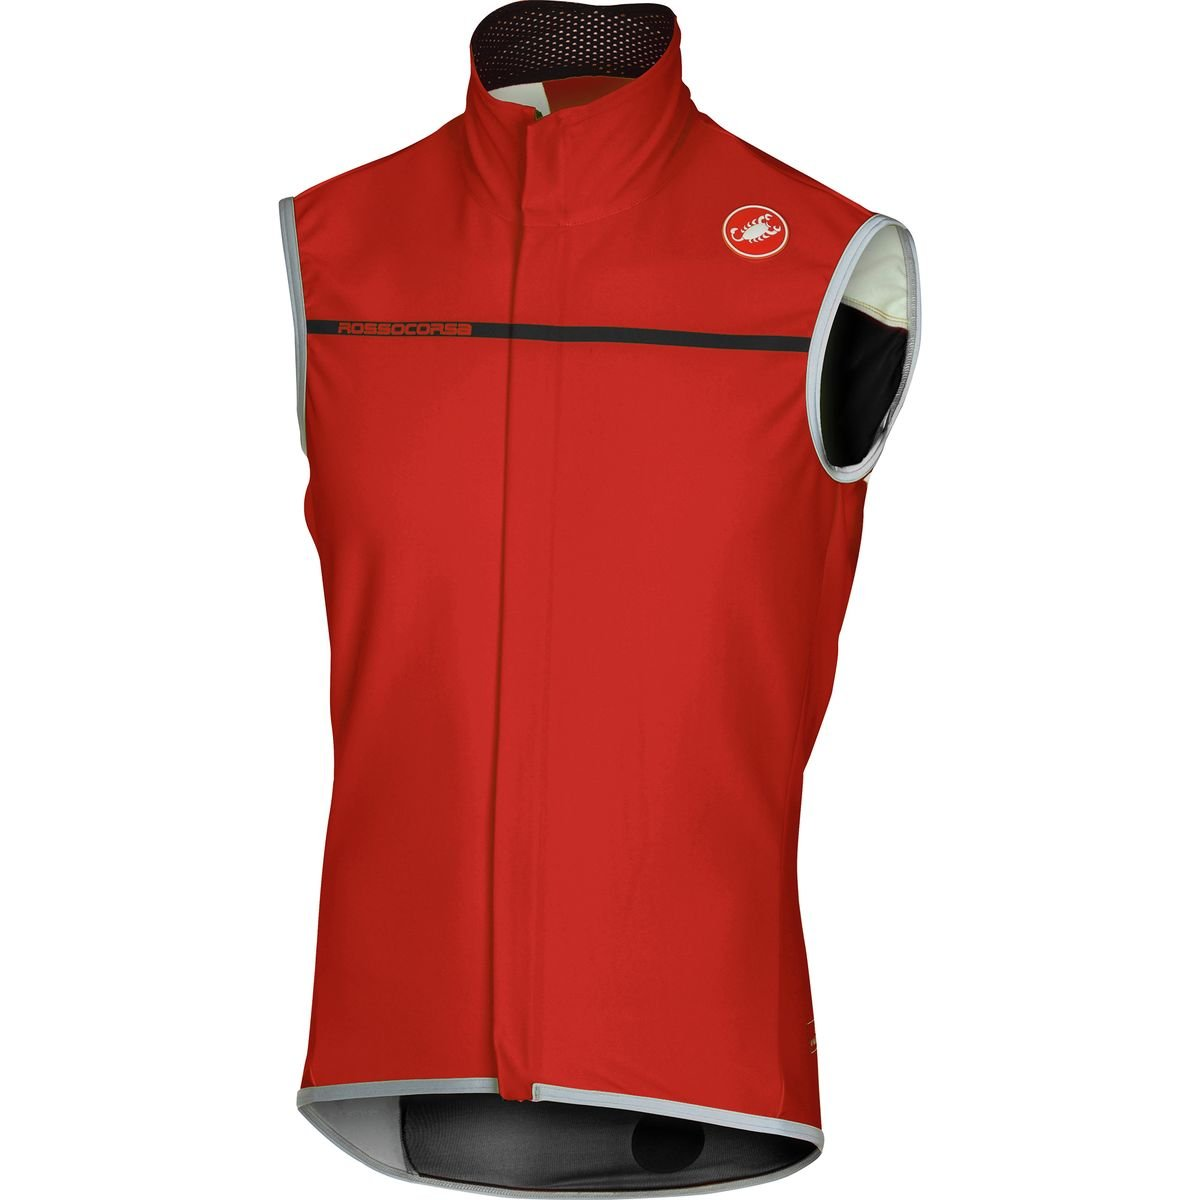 Castelli Perfetto Vest - Men's Red, L by Castelli